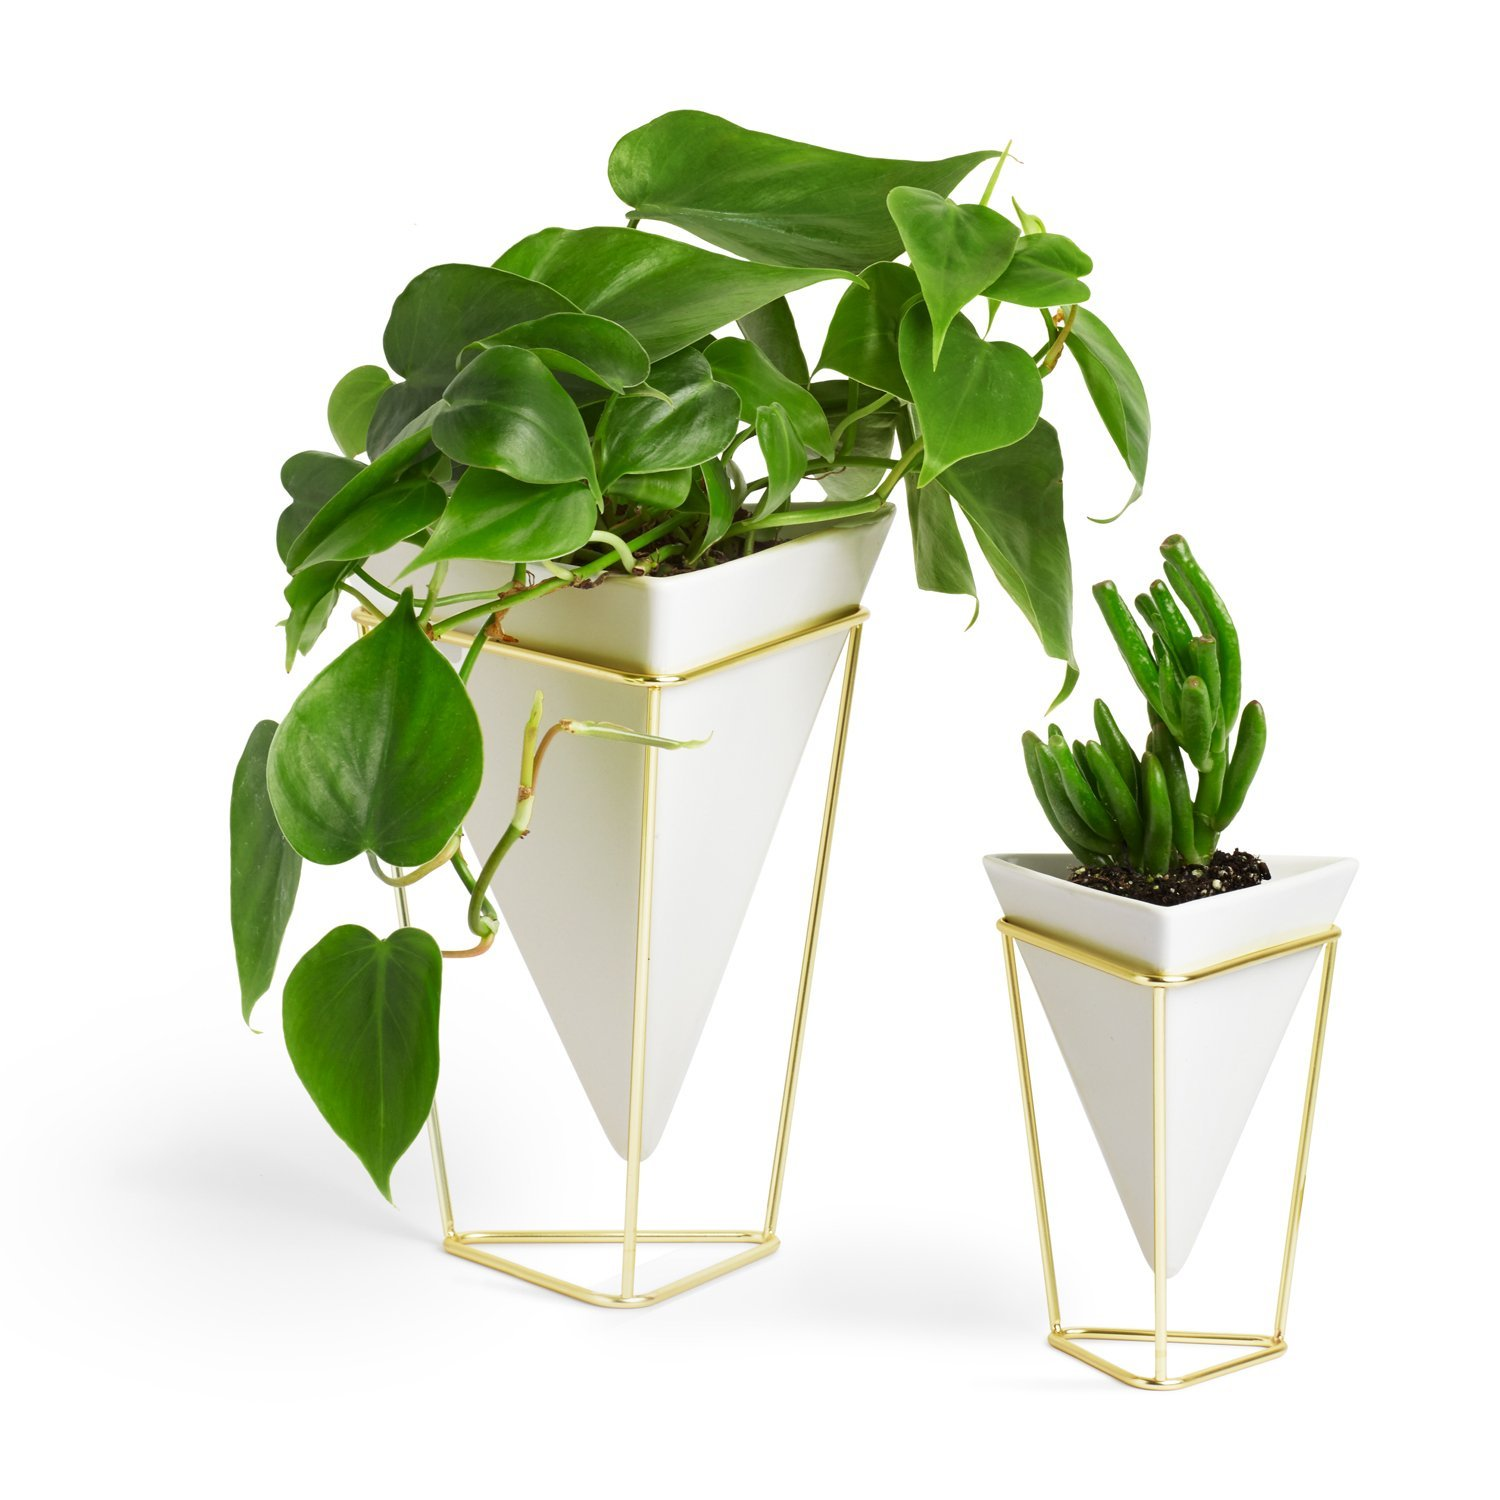 Unique Triangular Flower Vase Set